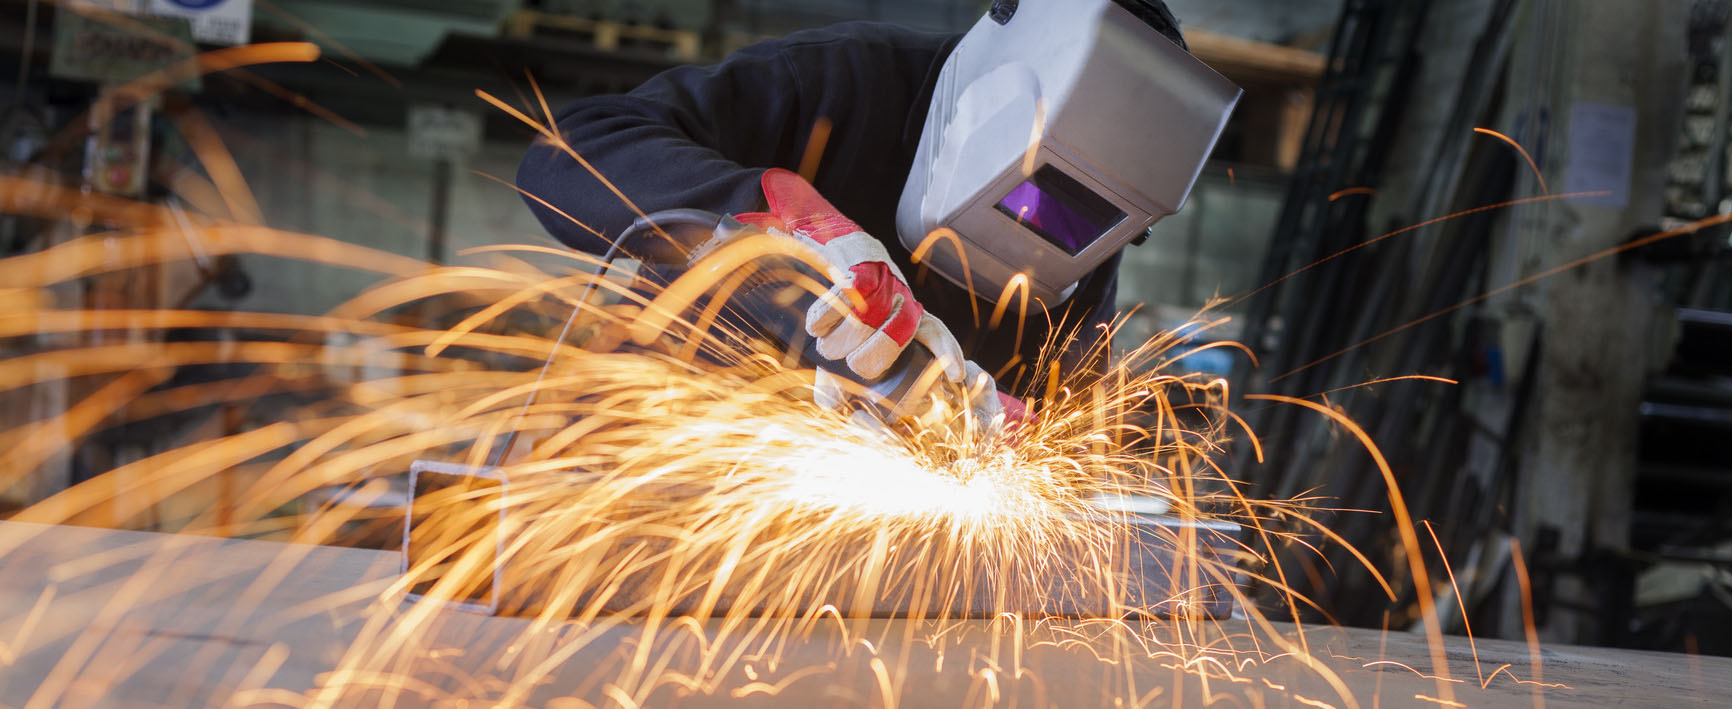 welding-frontpage